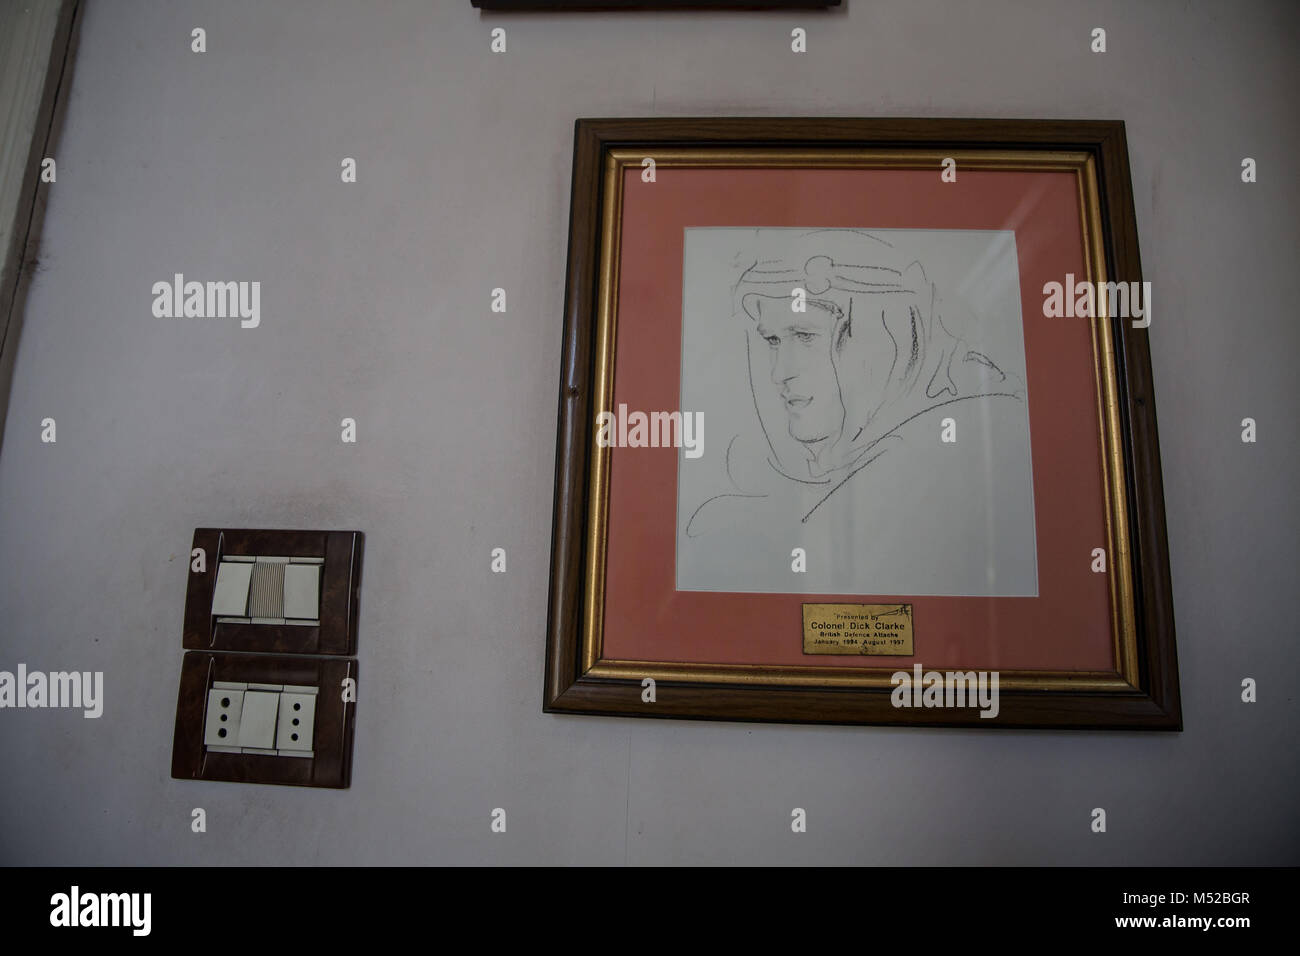 Lawrence of Arabia was one of the guests at the hotel. His room can still be visited. A portrait of him can be seen - Stock Image